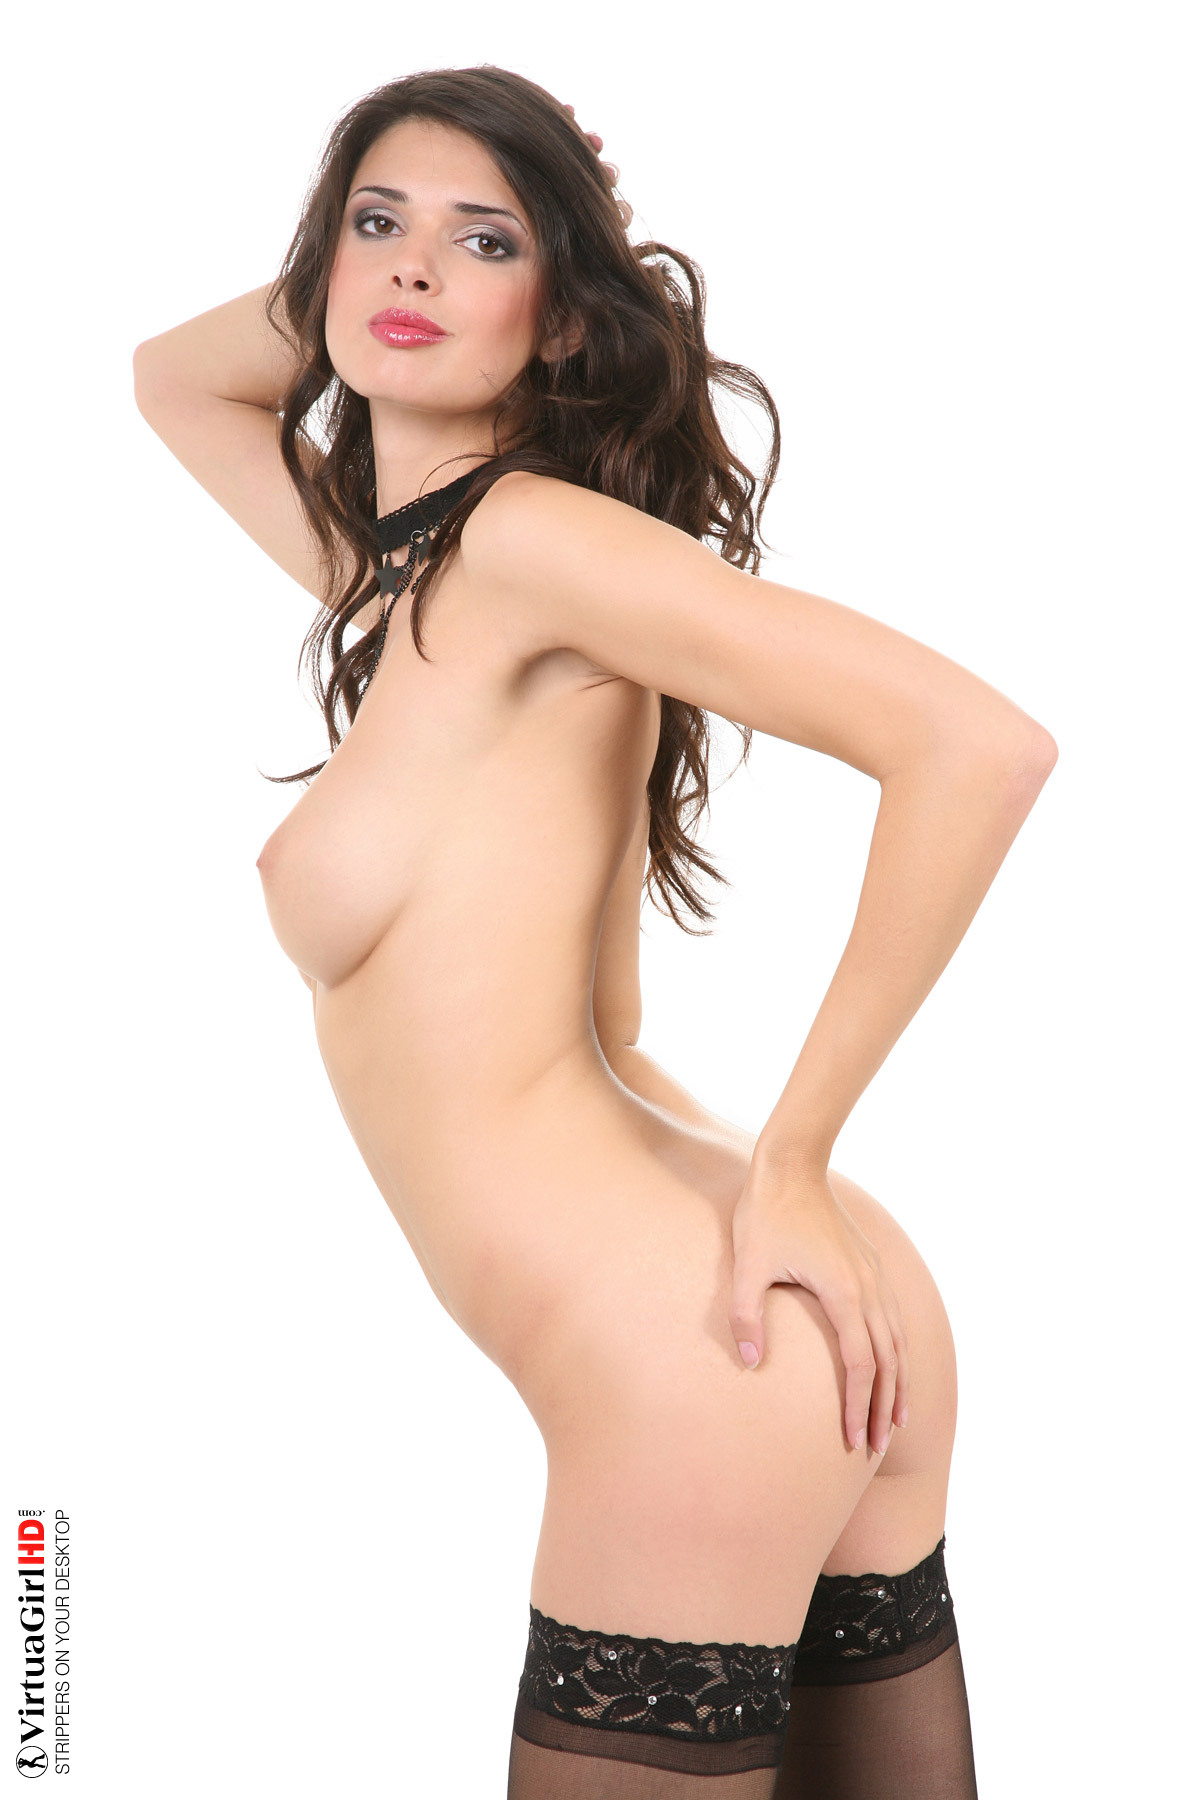 live naked girl wallpapers